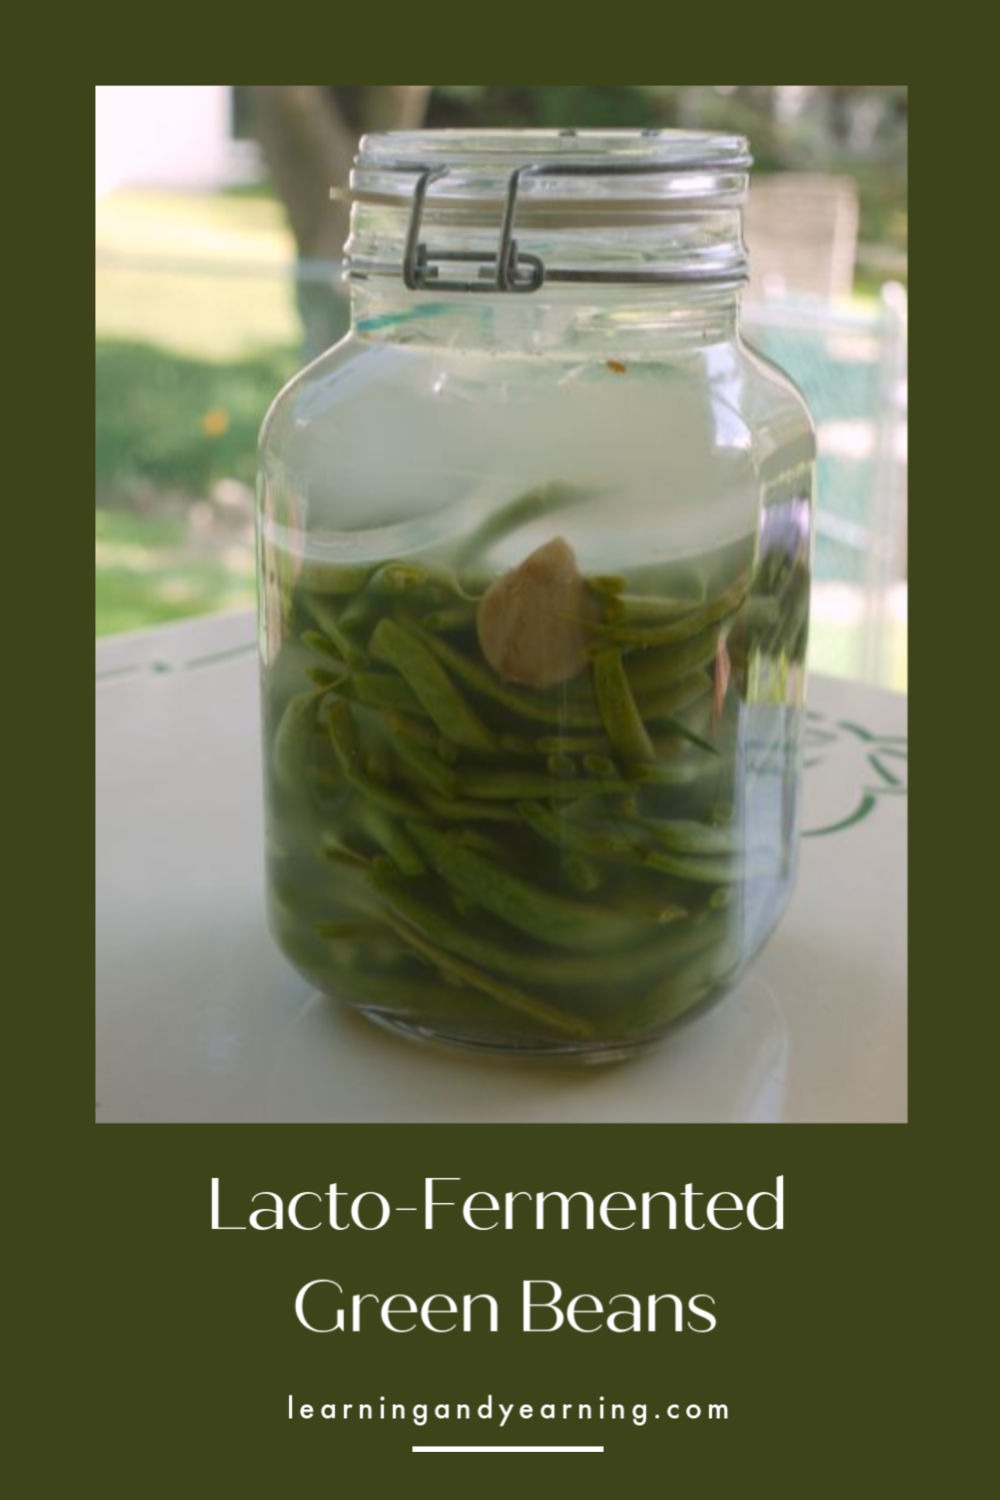 Homemade lacto-fermented green beans!